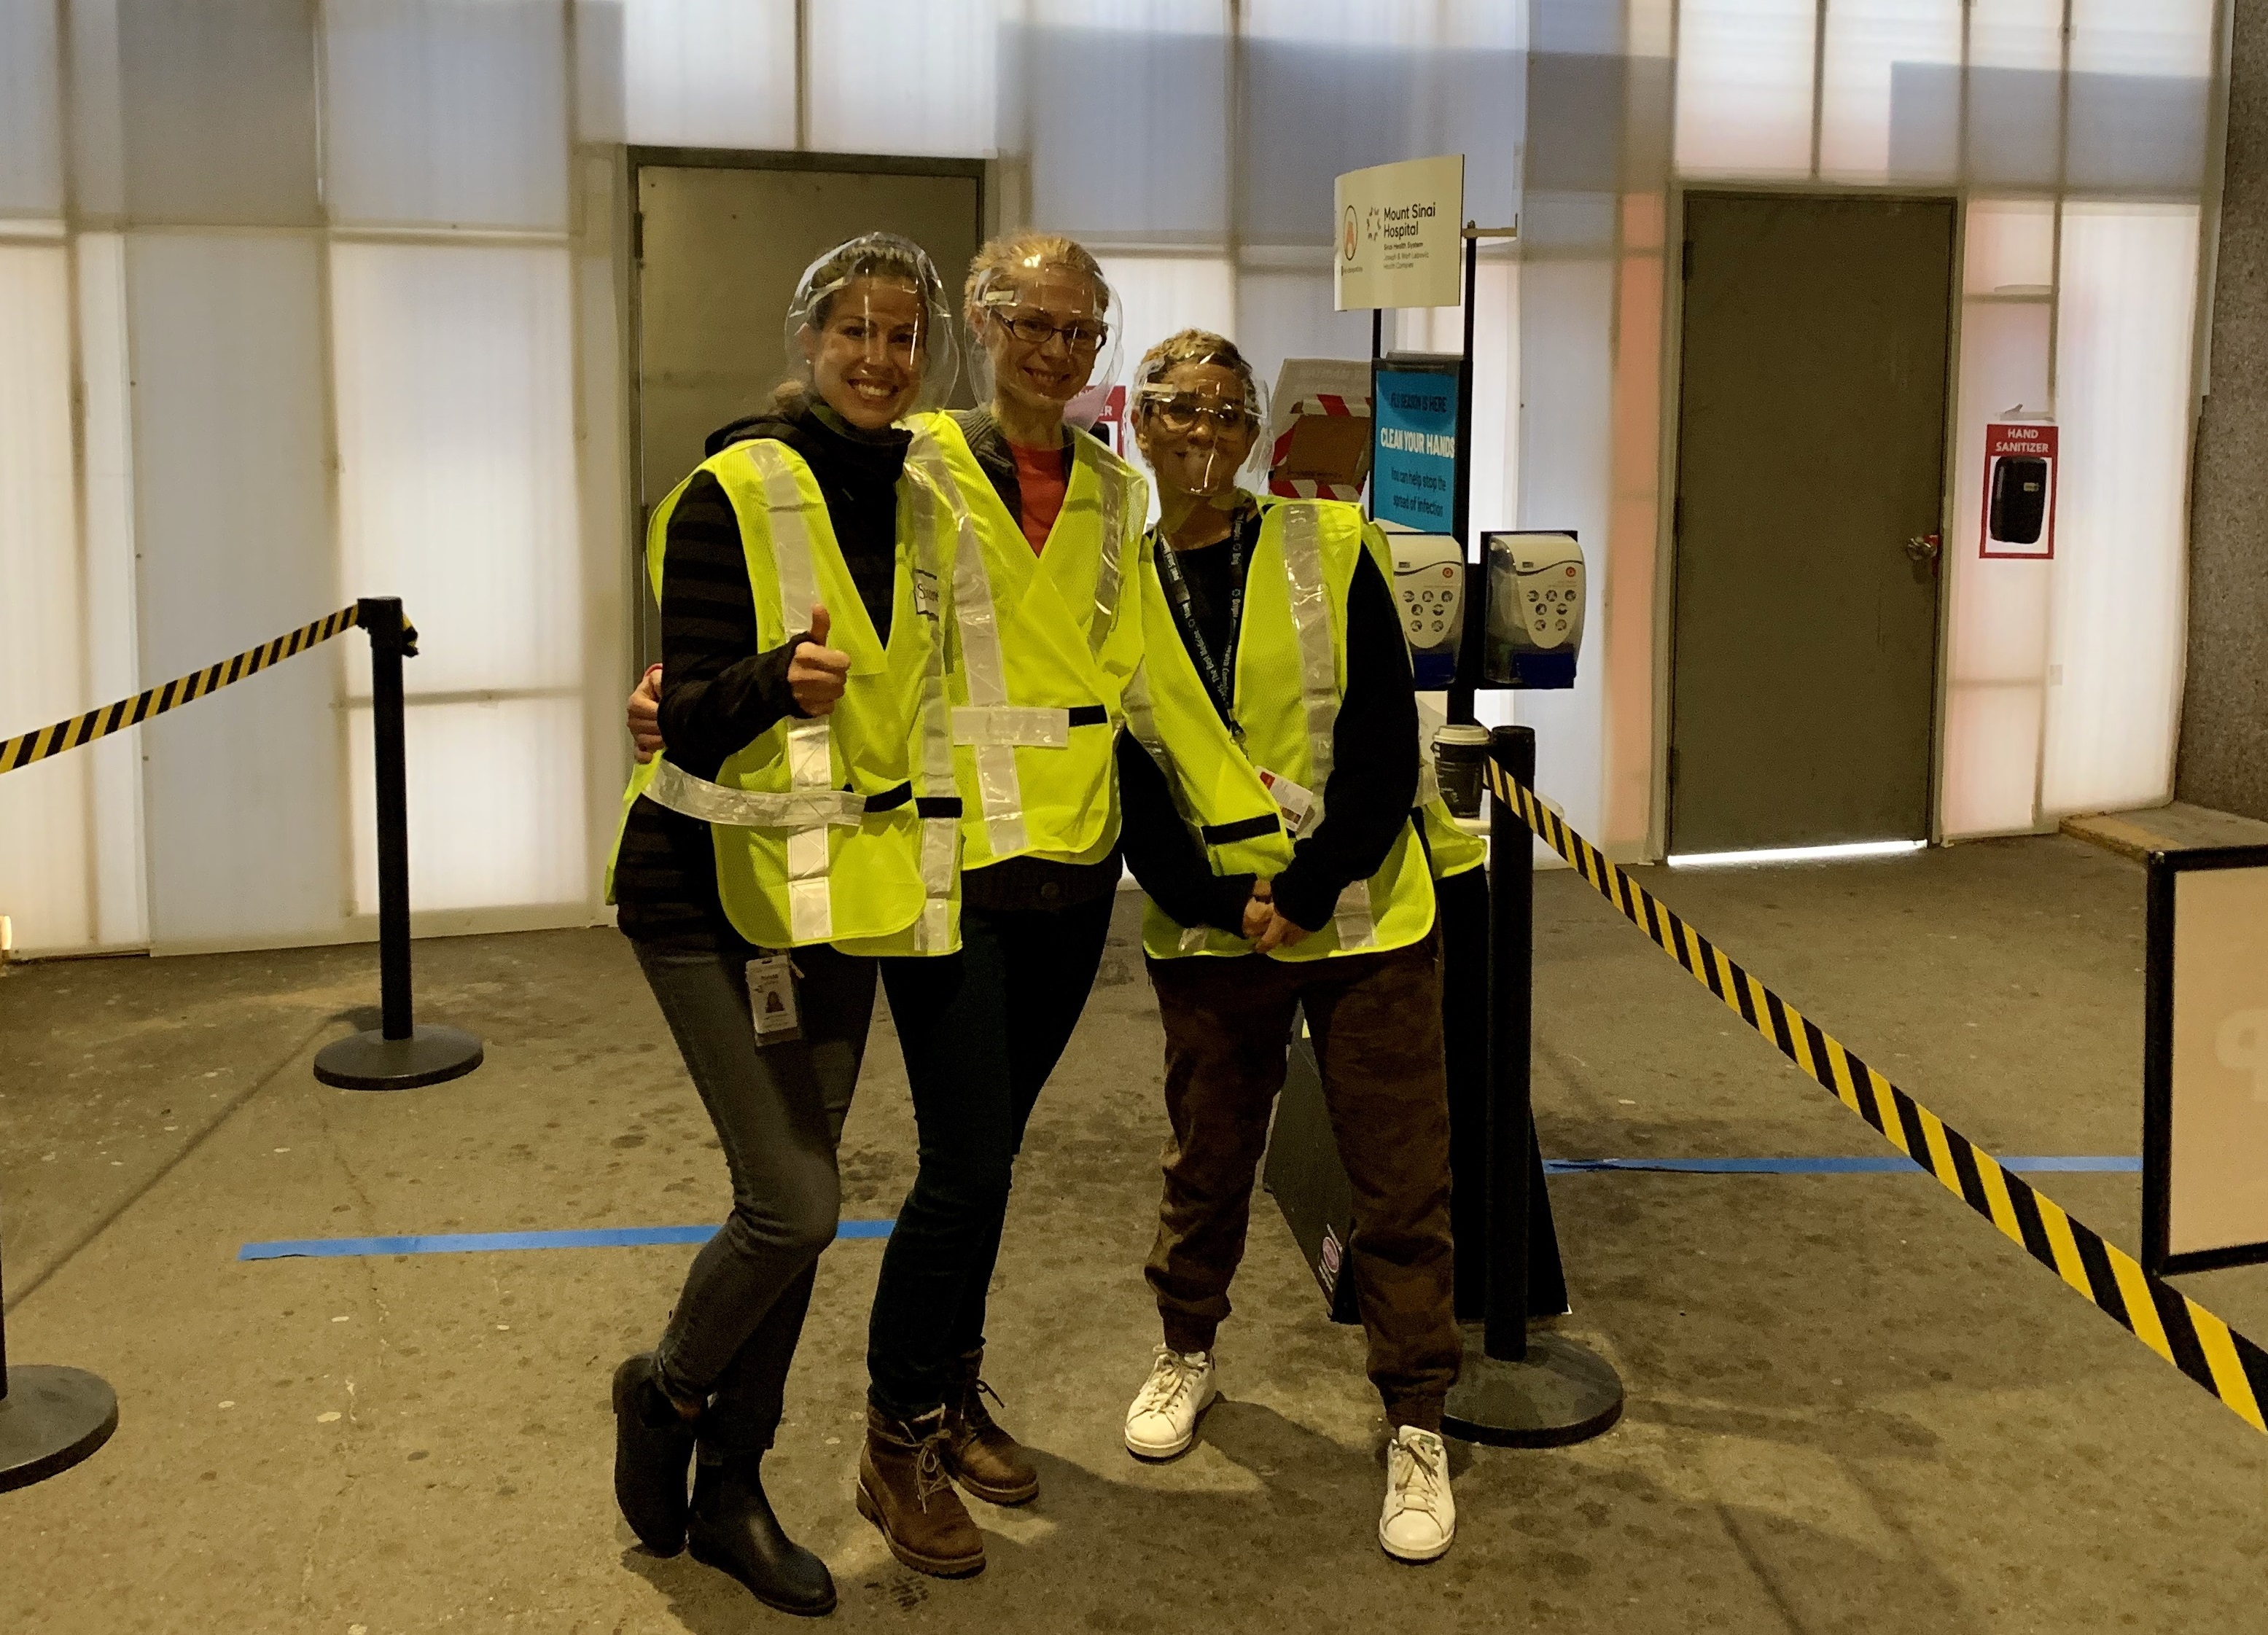 Three health care employees wearing reflective safety vests and face shields standing outside the hospital entrance. They are looking at the camera, smiling.